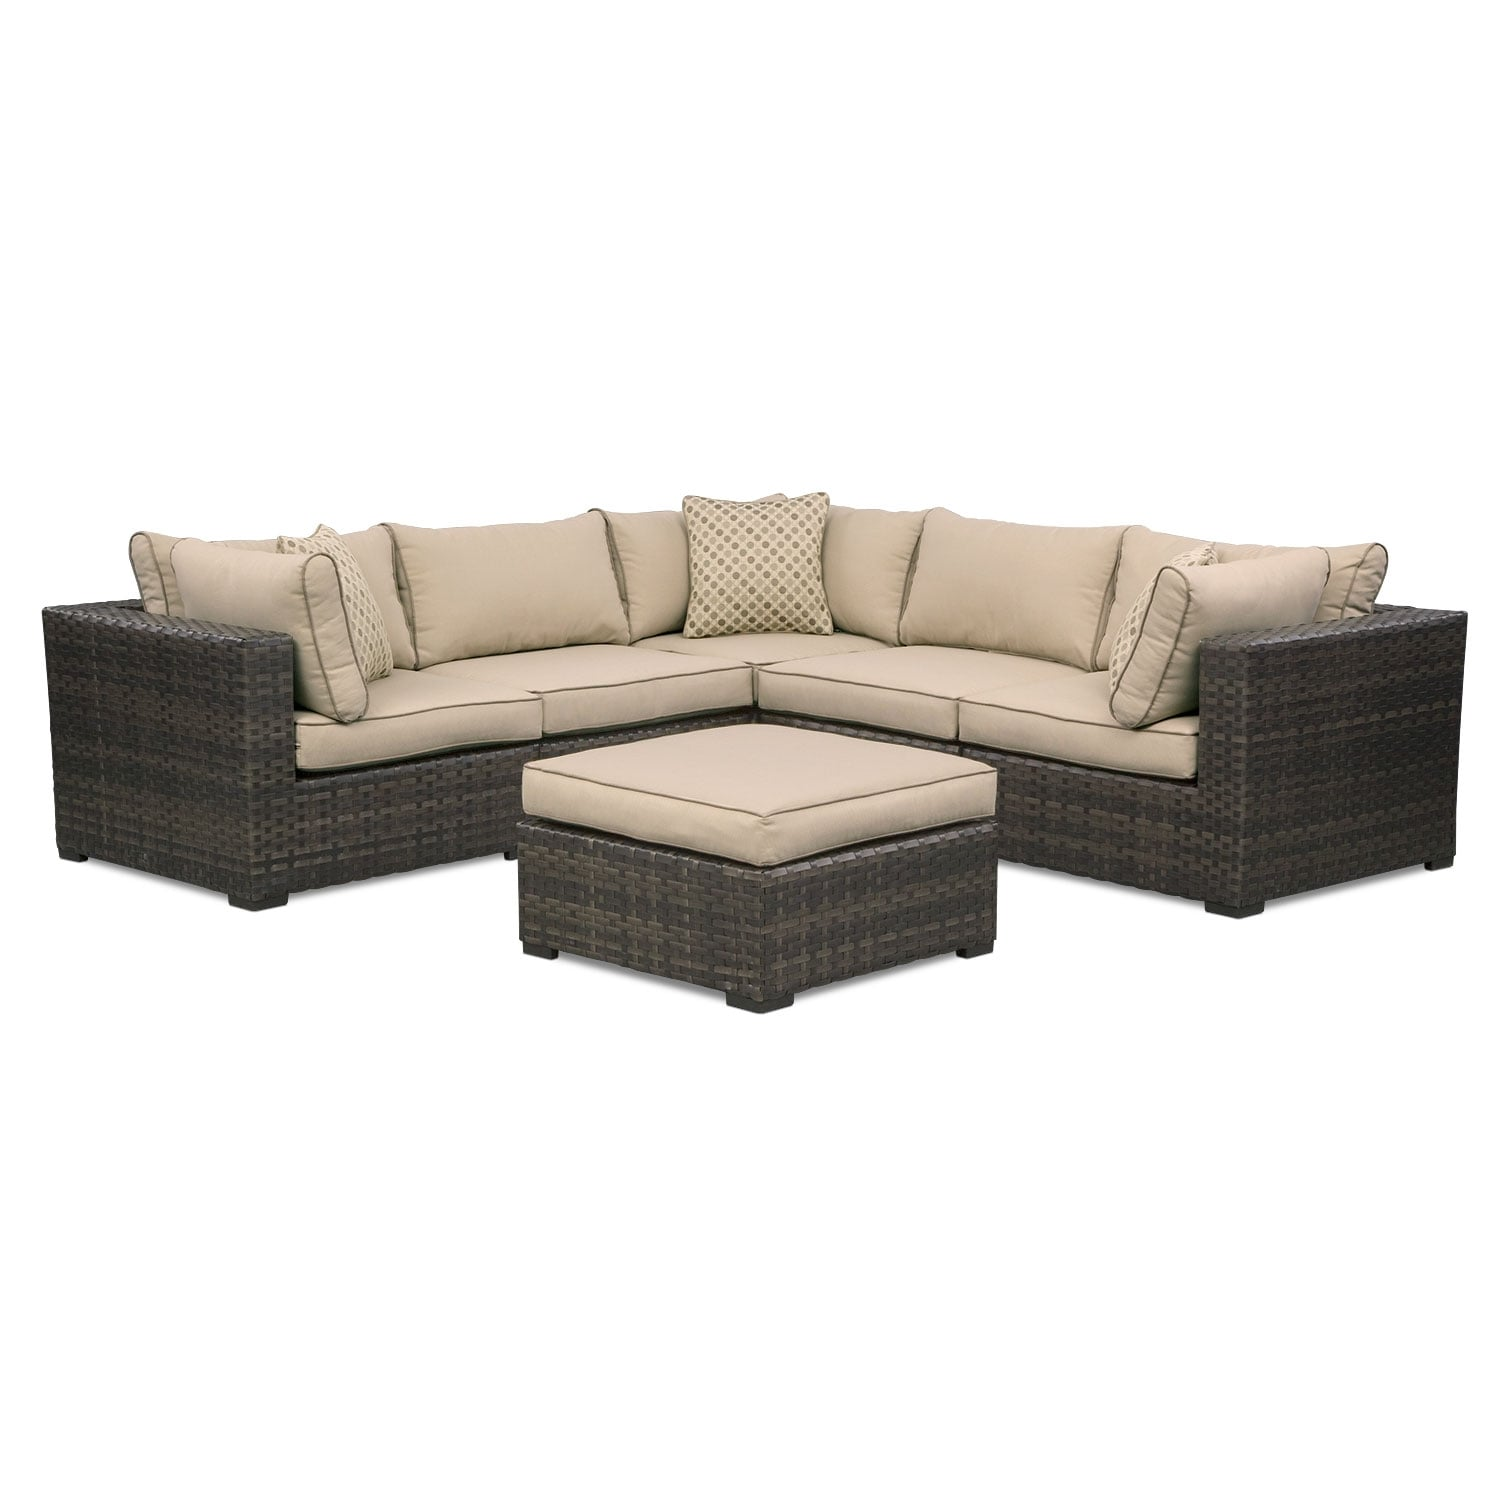 Regatta 5-Piece Outdoor Sectional and Ottoman Set - Brown - Shop All Patio Furniture Value City Value City Furniture